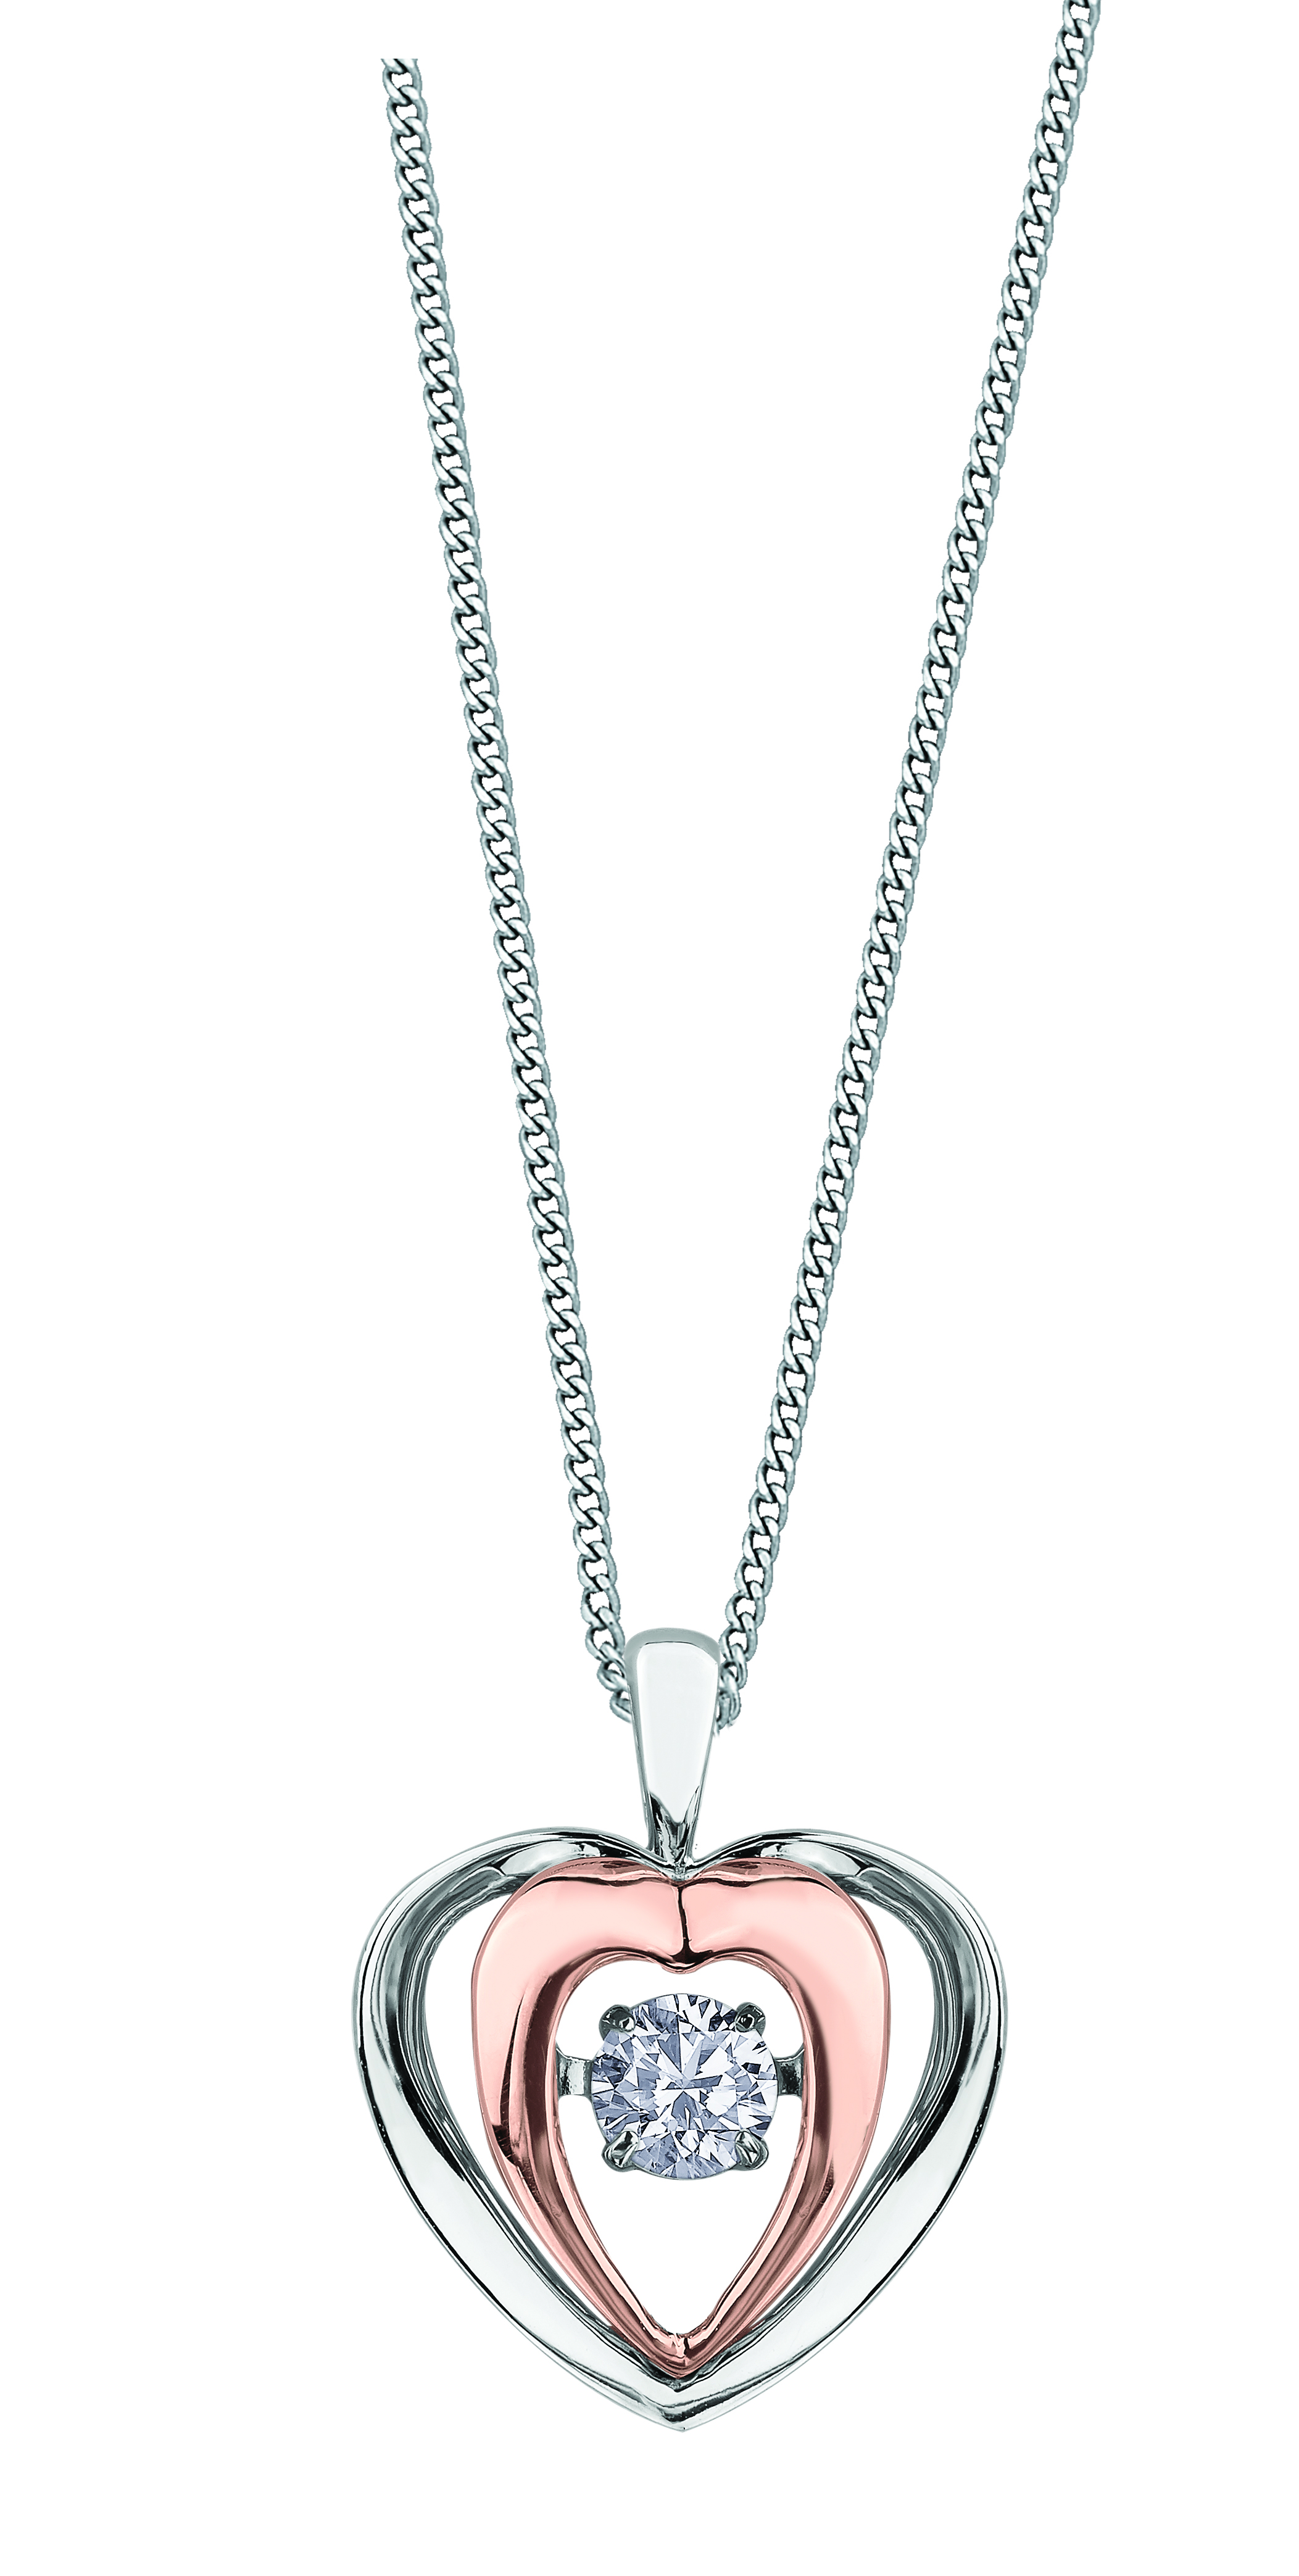 Pendentif - Or 2-tons 10K (rose et blanc)  & Diamants Canadien totalisant 0.09 Carat